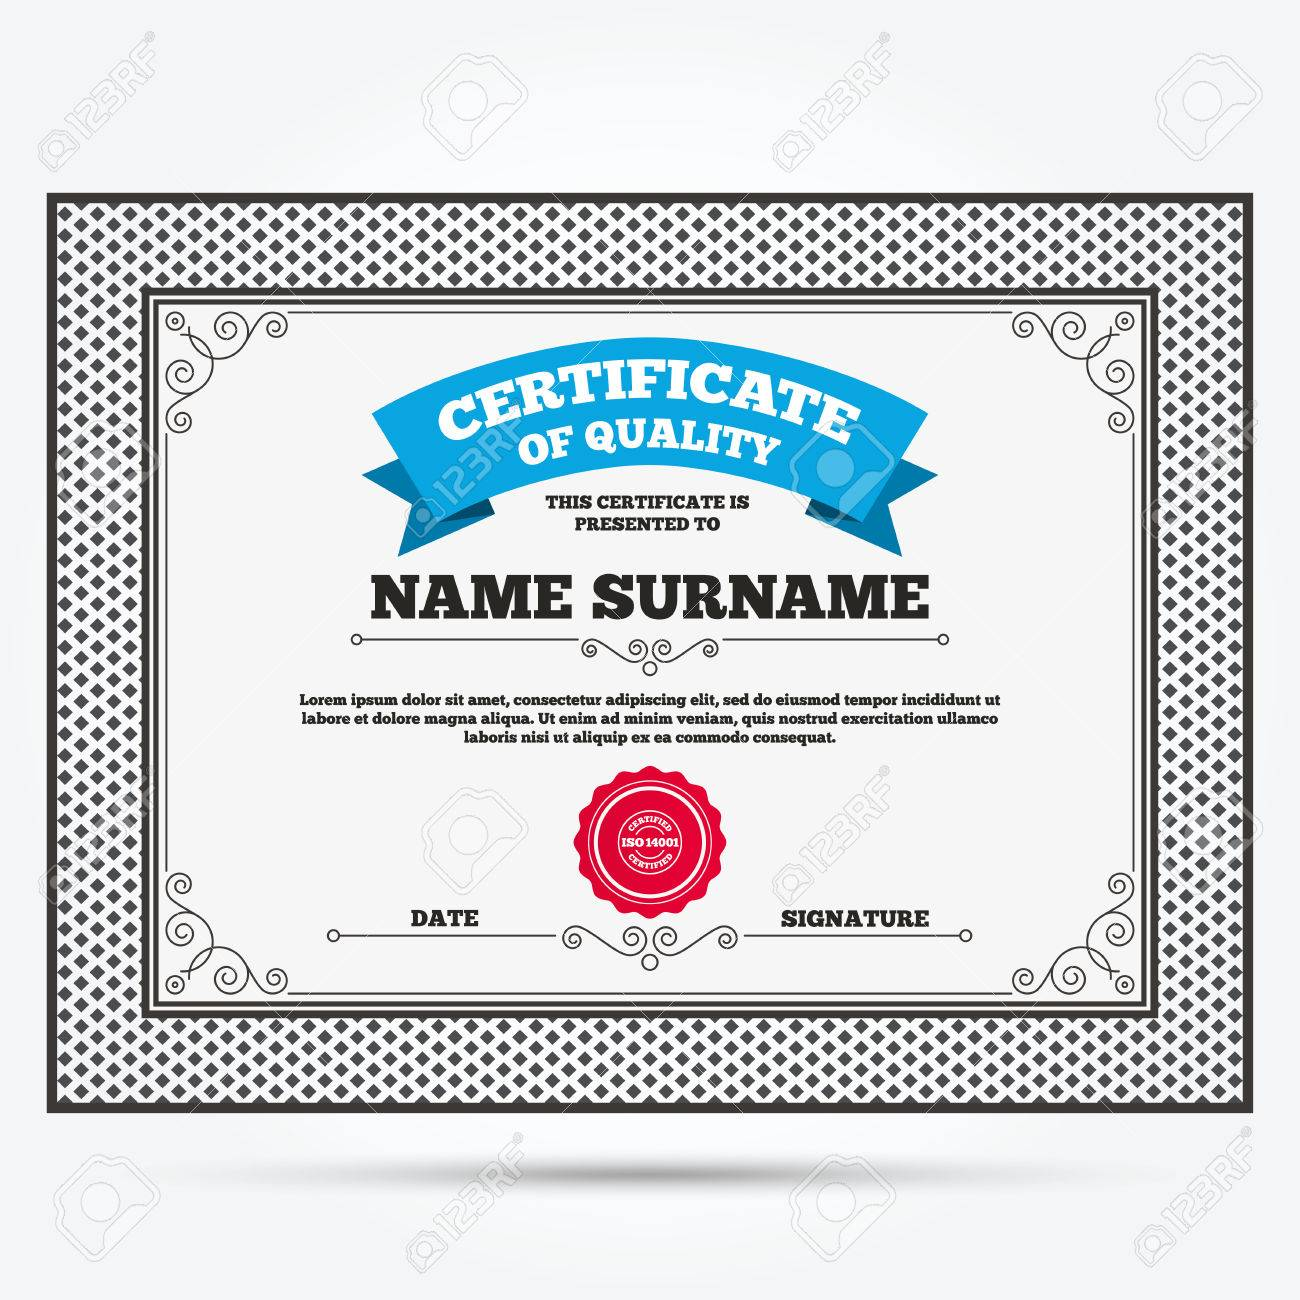 certificate of quality iso certified sign icon certificate of quality iso 14001 certified sign icon certification stamp template vintage